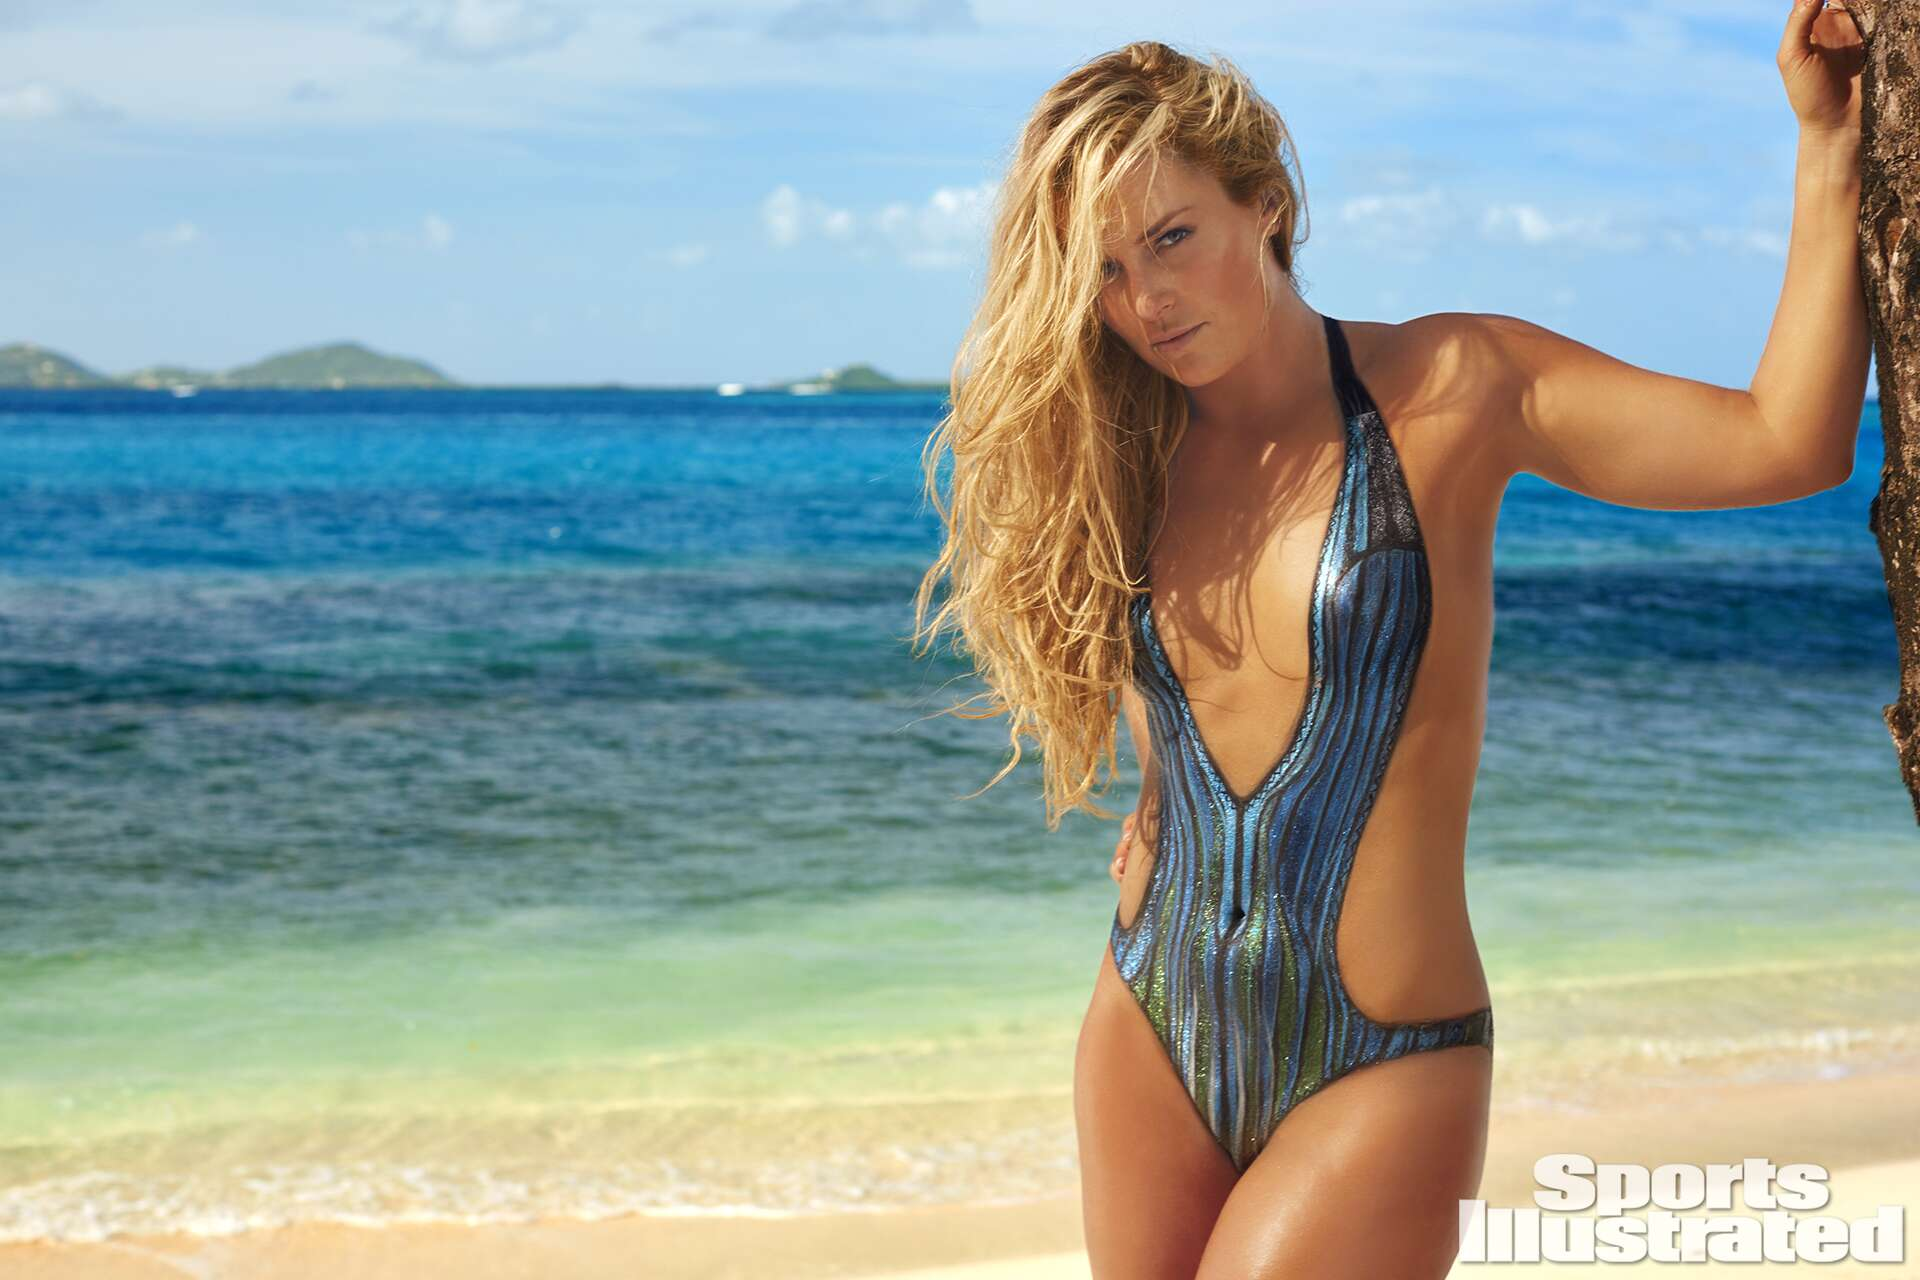 Lindsey Vonn was photographed by Frederic Pinet in Petit St. Vincent. Swimsuit inspired by Missoni.